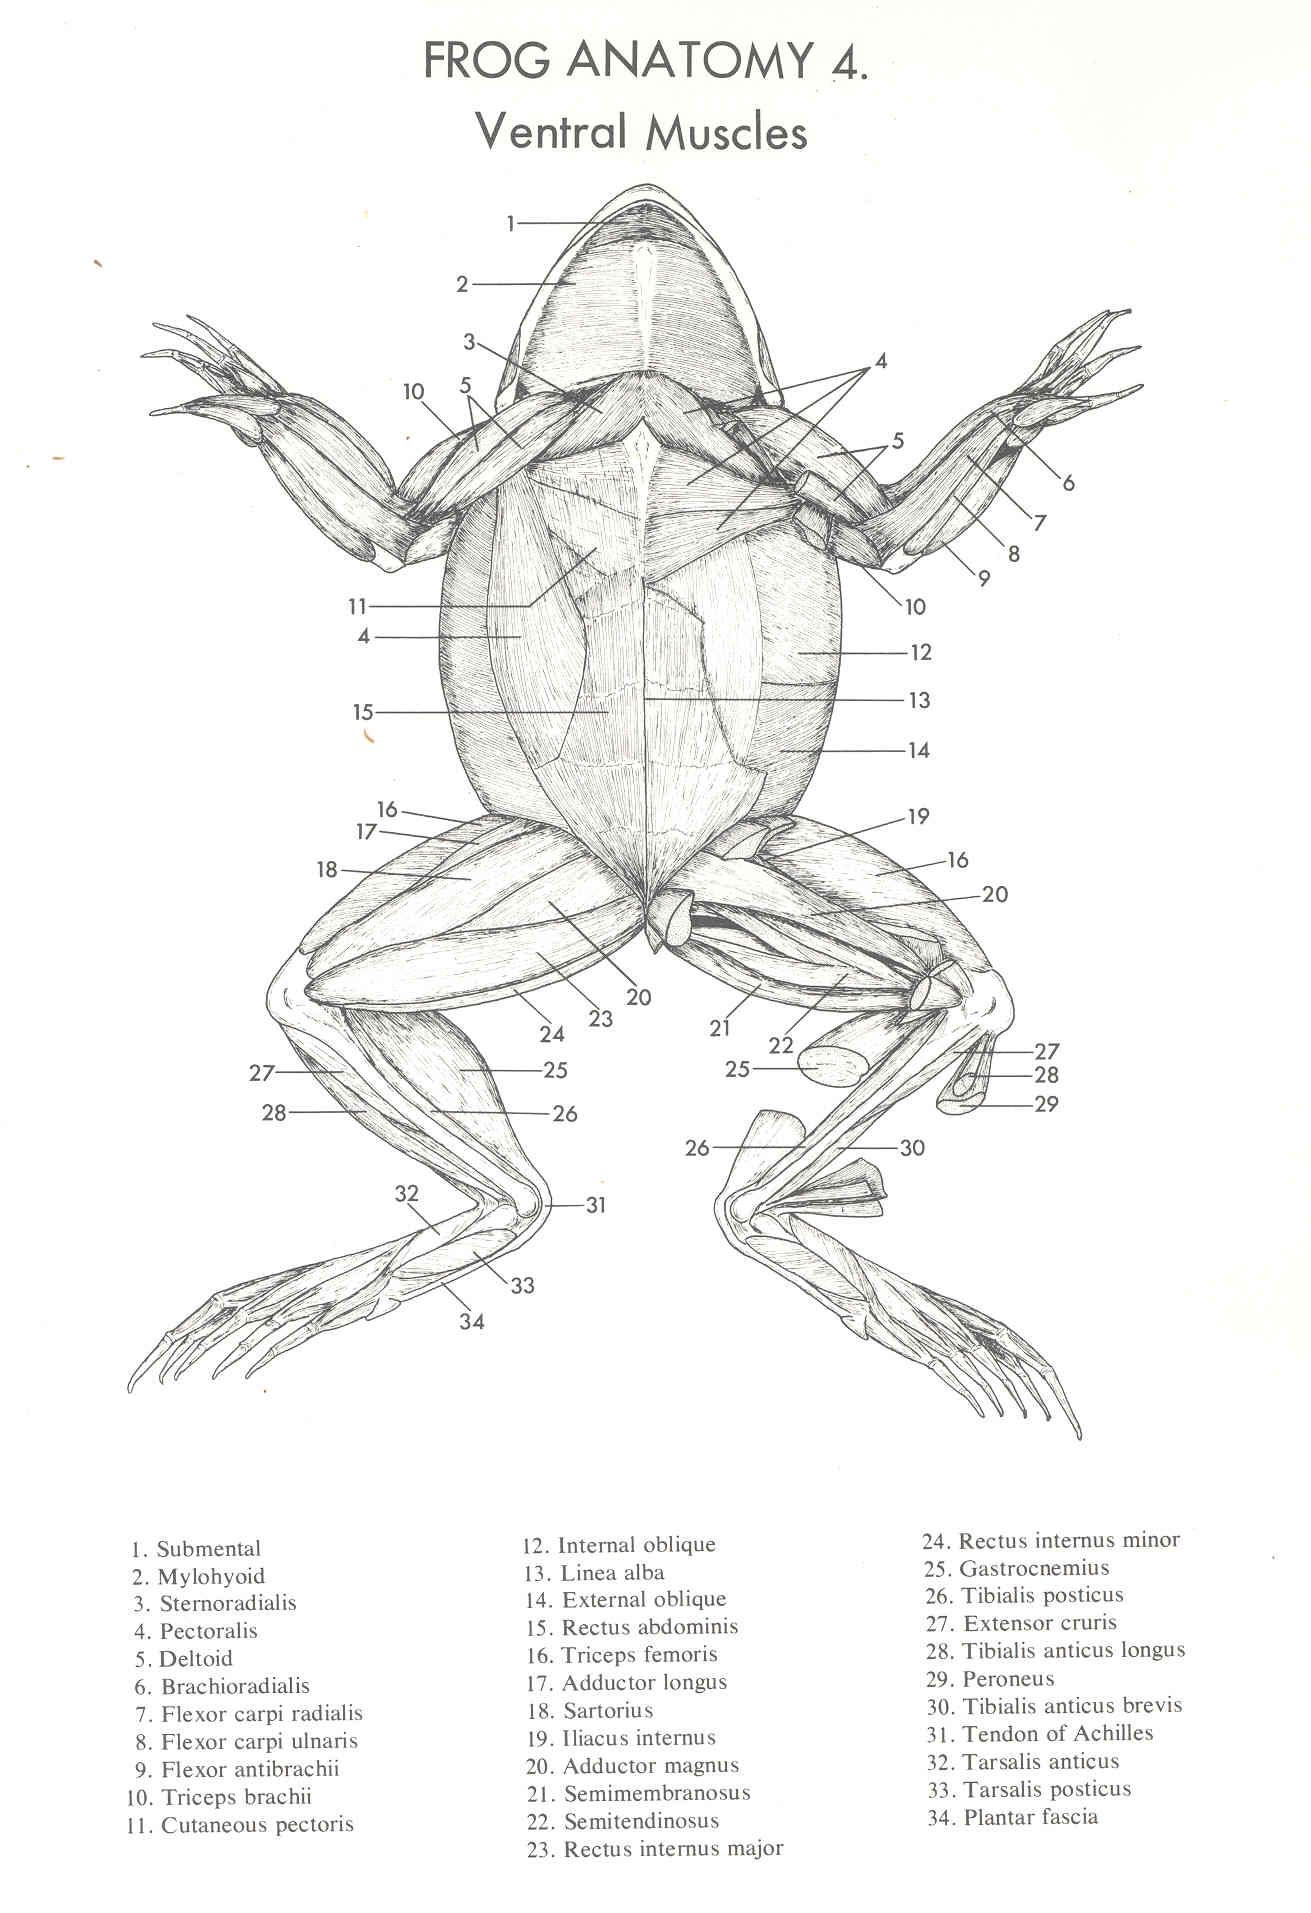 Frog Anatomy Diagram Ventral View - Wiring Library •